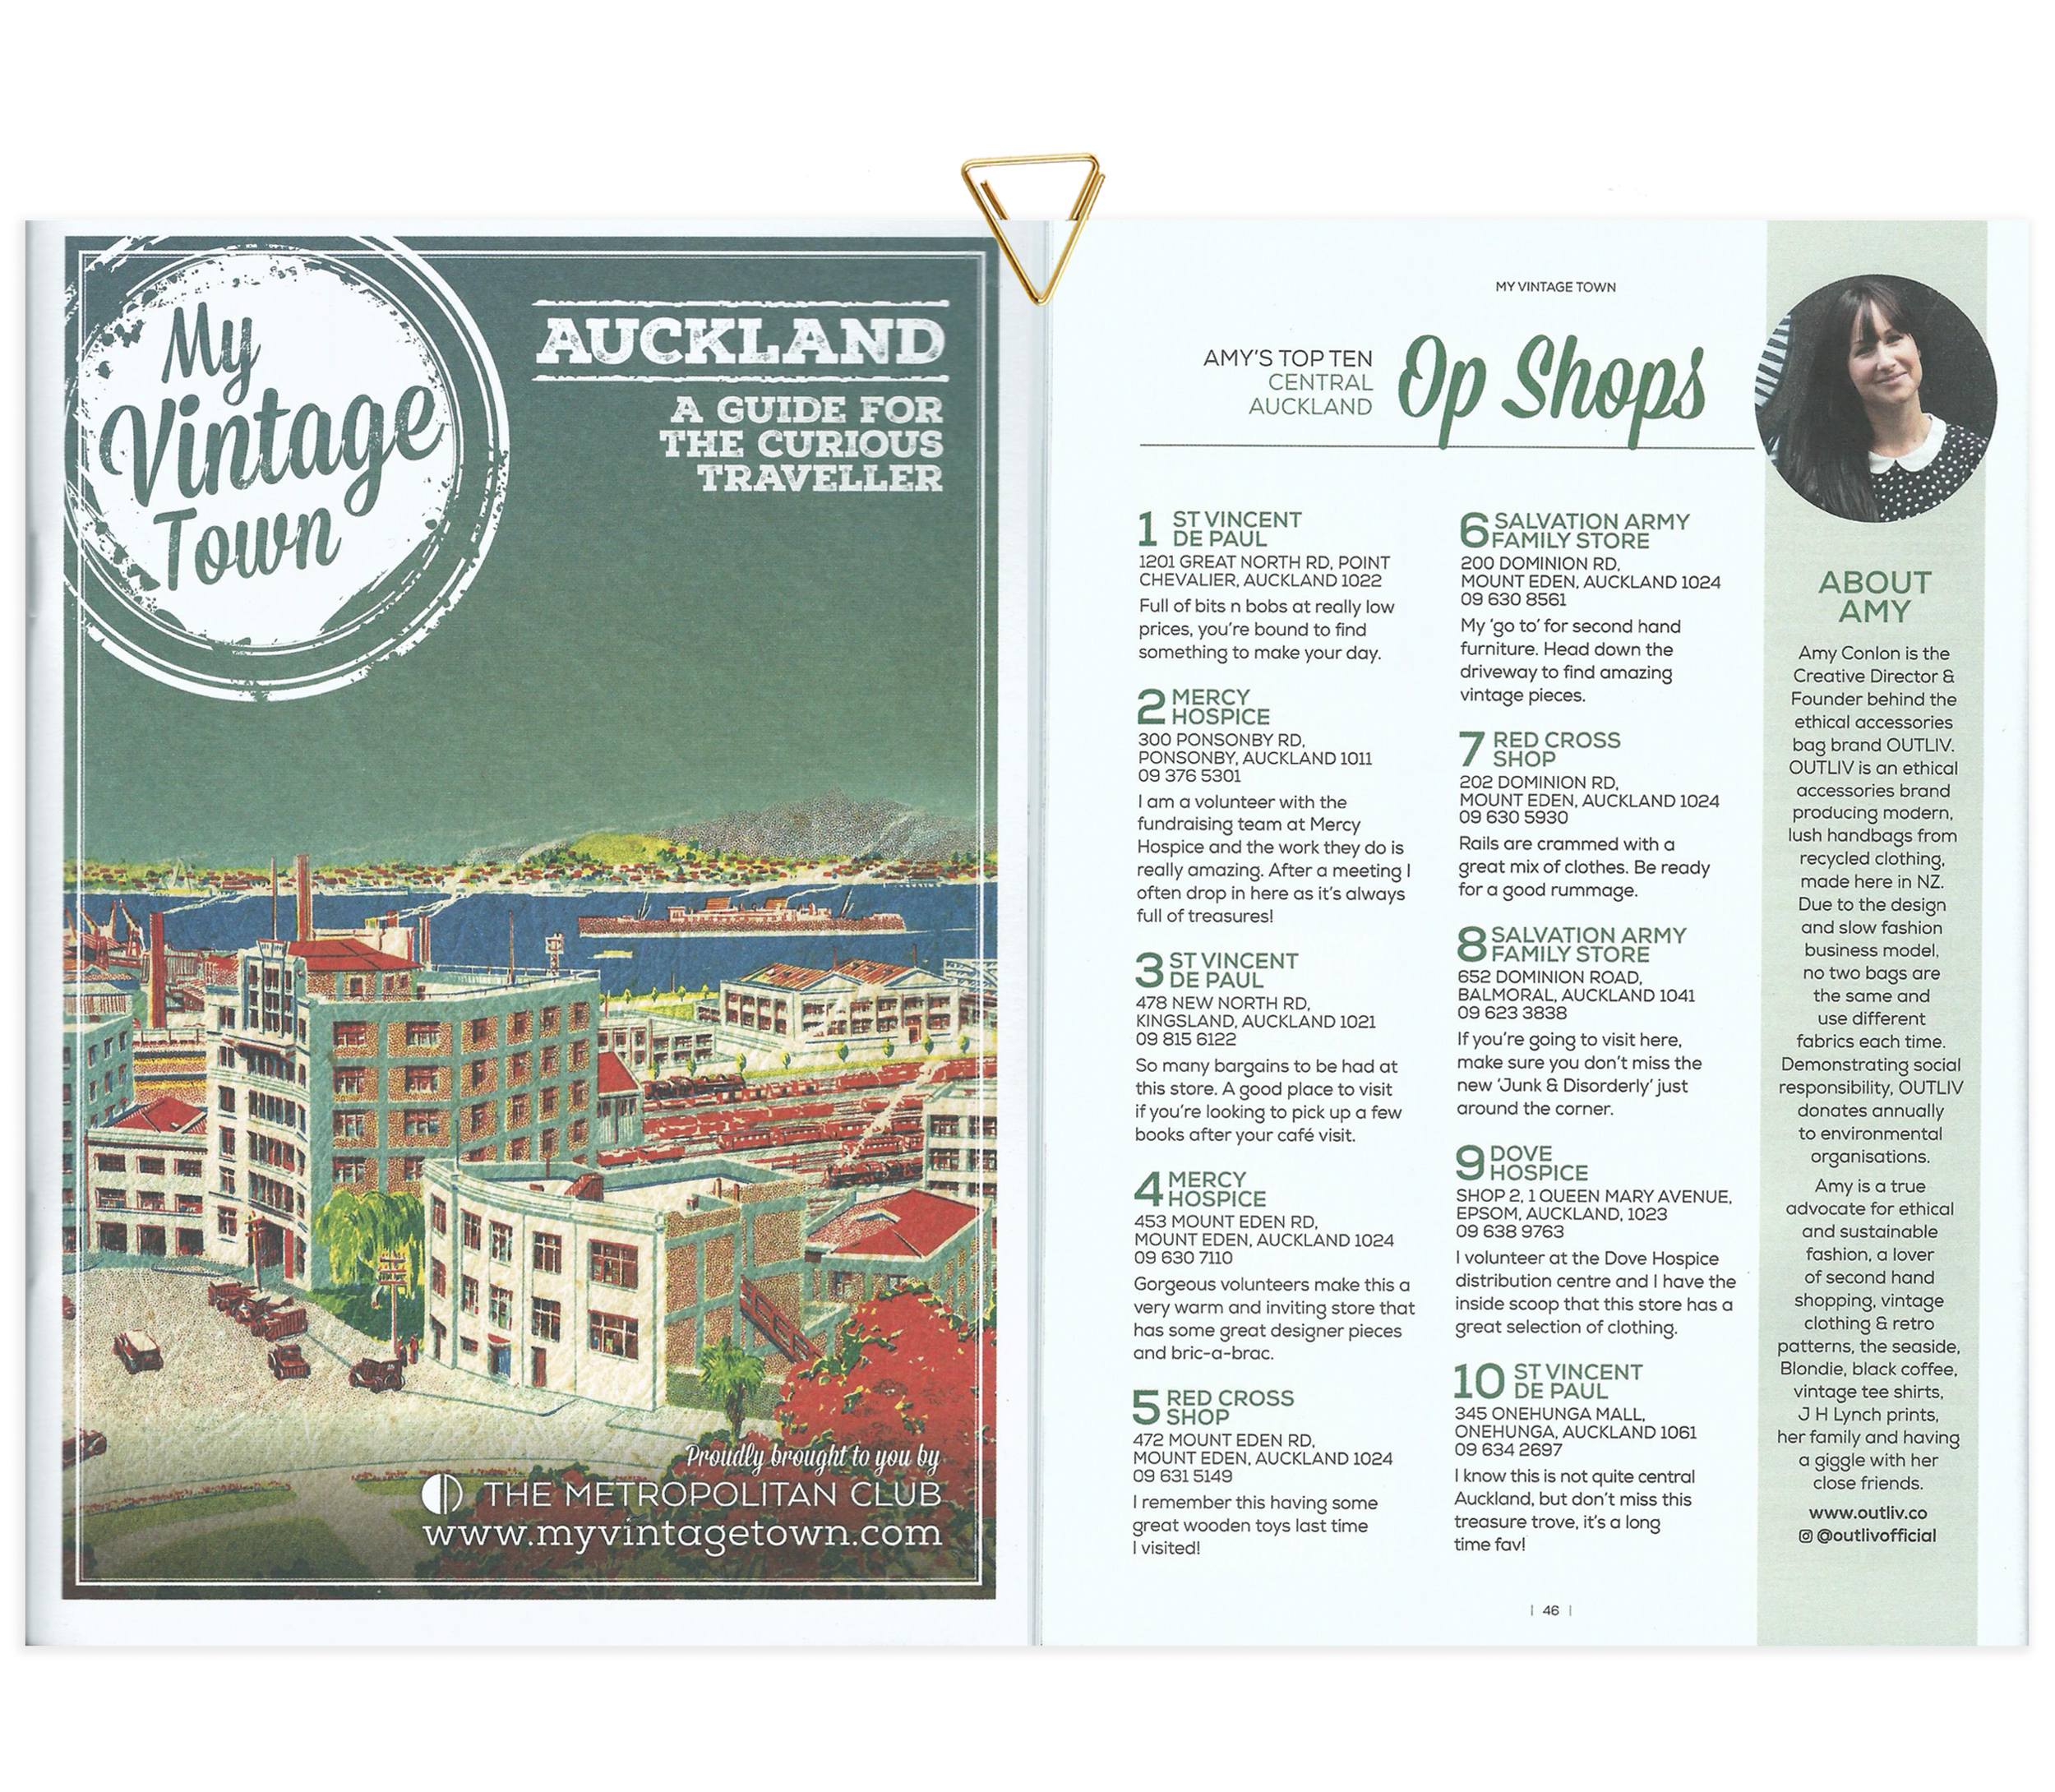 MY VINTAGE TOWN Auckland Guide | www.myvintagetown.com | Amy's Top Ten Central Auckland Op Shops | Print Issue Nov 2018